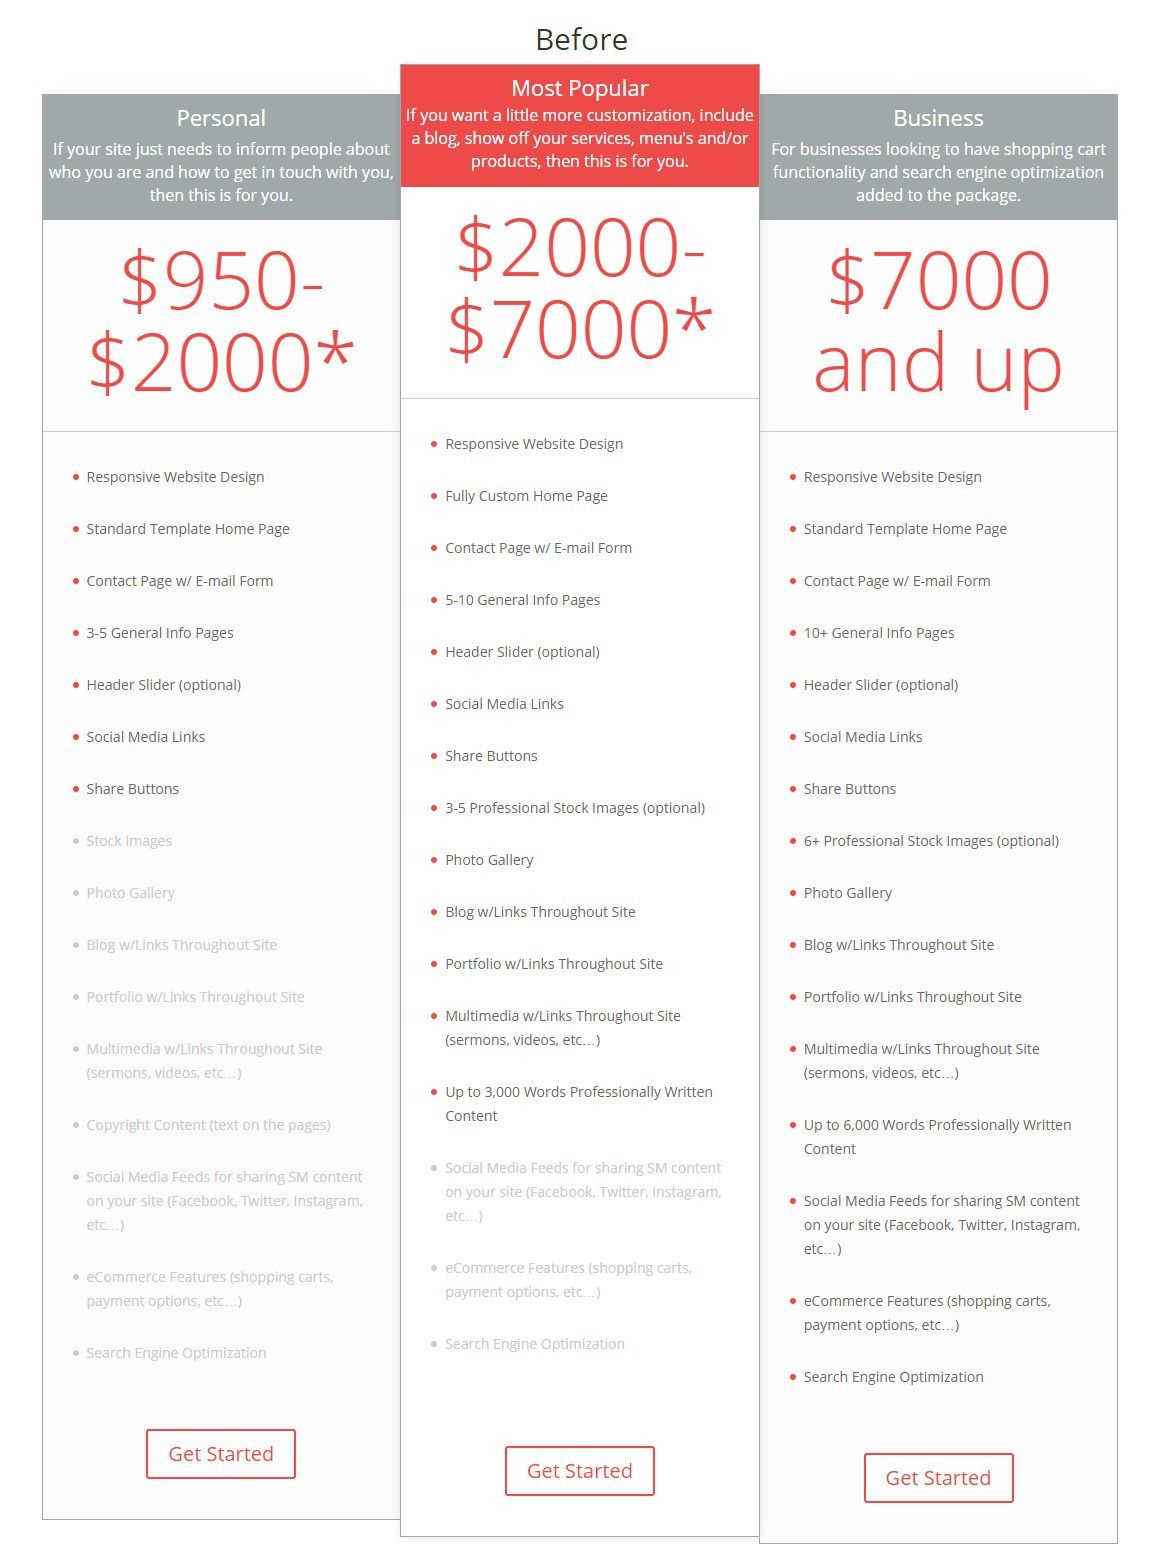 Customizing the Pricing Table in Divi | Elegant Themes: Divi